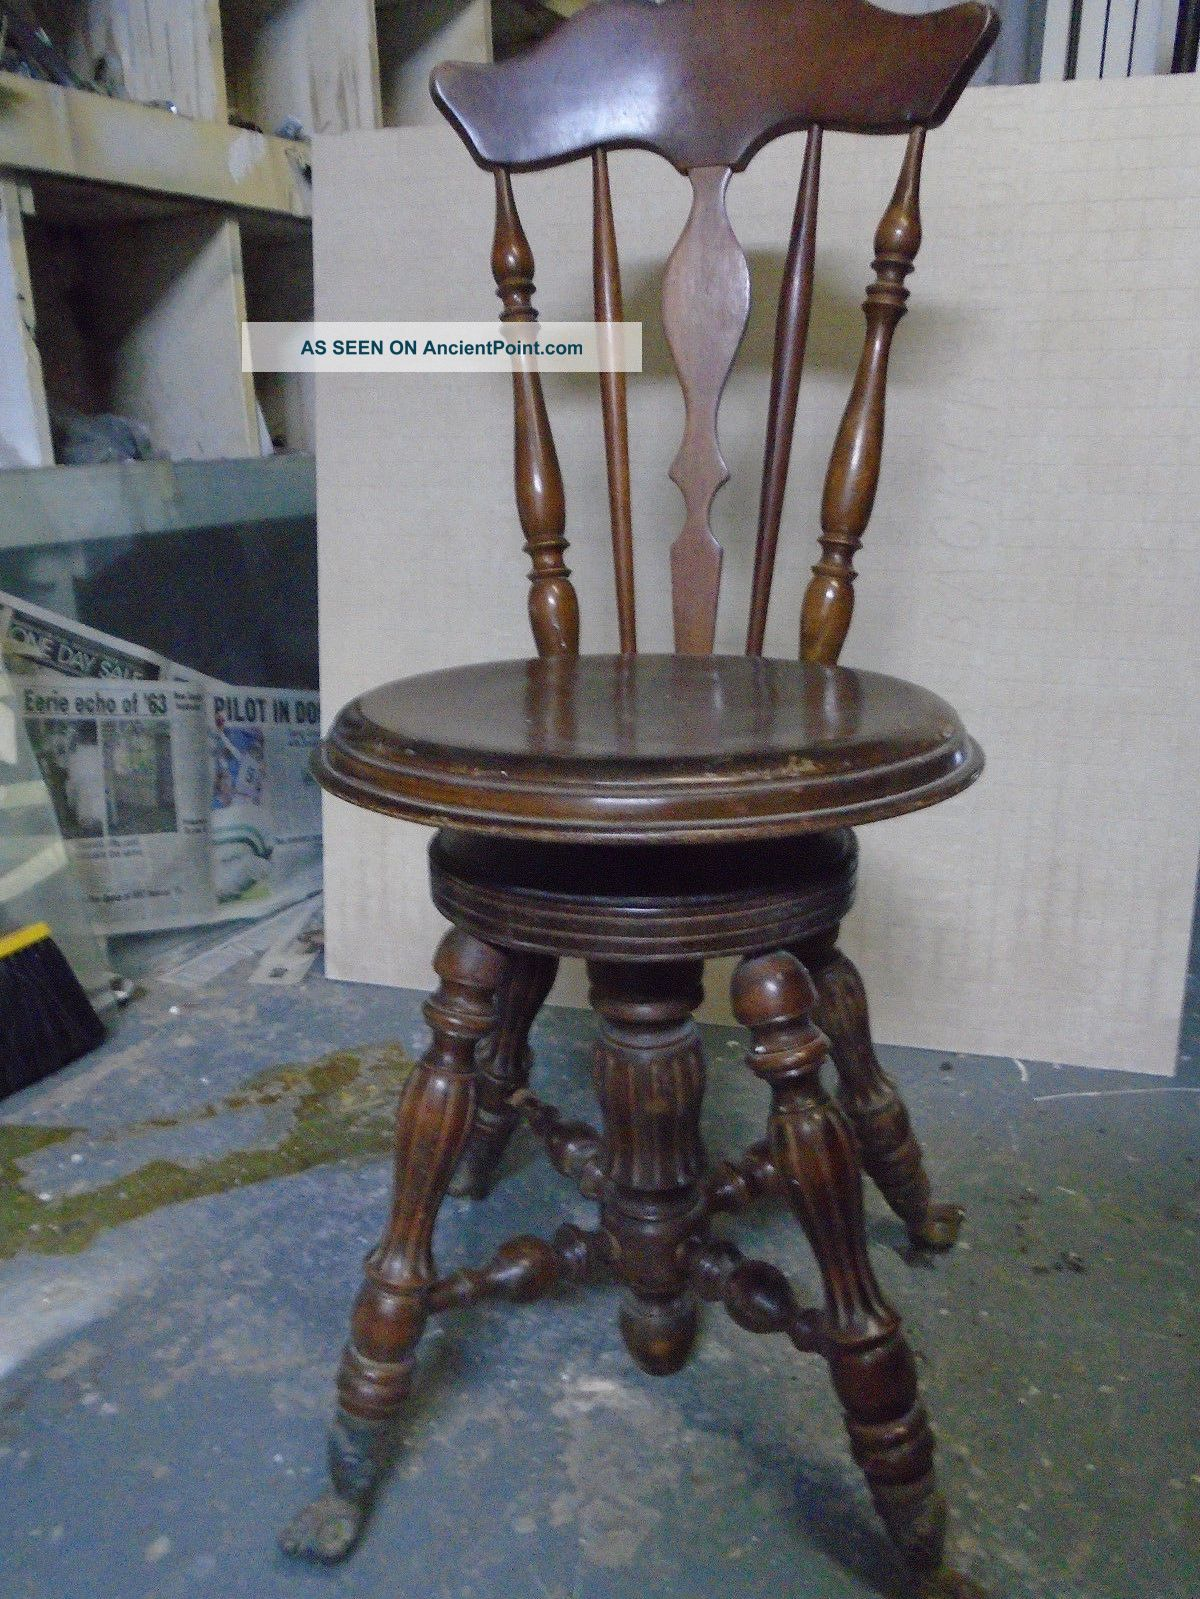 Vintage Antique Piano Chair Spindell Back Claw Feet 1900's Excell. Cond. - Vintage Antique Piano Chair Spindell Back Claw Feet 1900's Excell